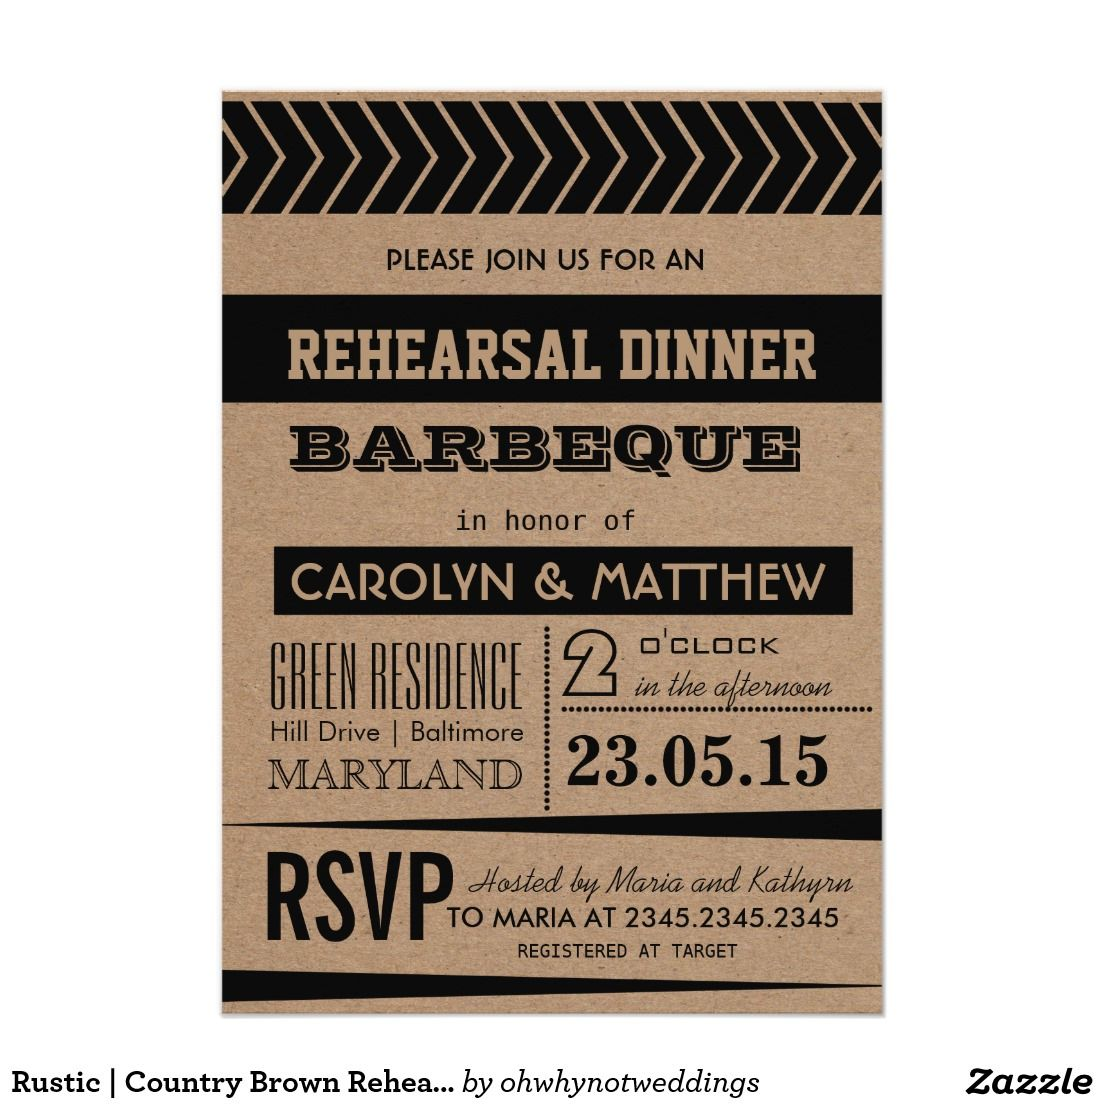 Rustic | Country Brown Rehearsal Dinner Barbeque